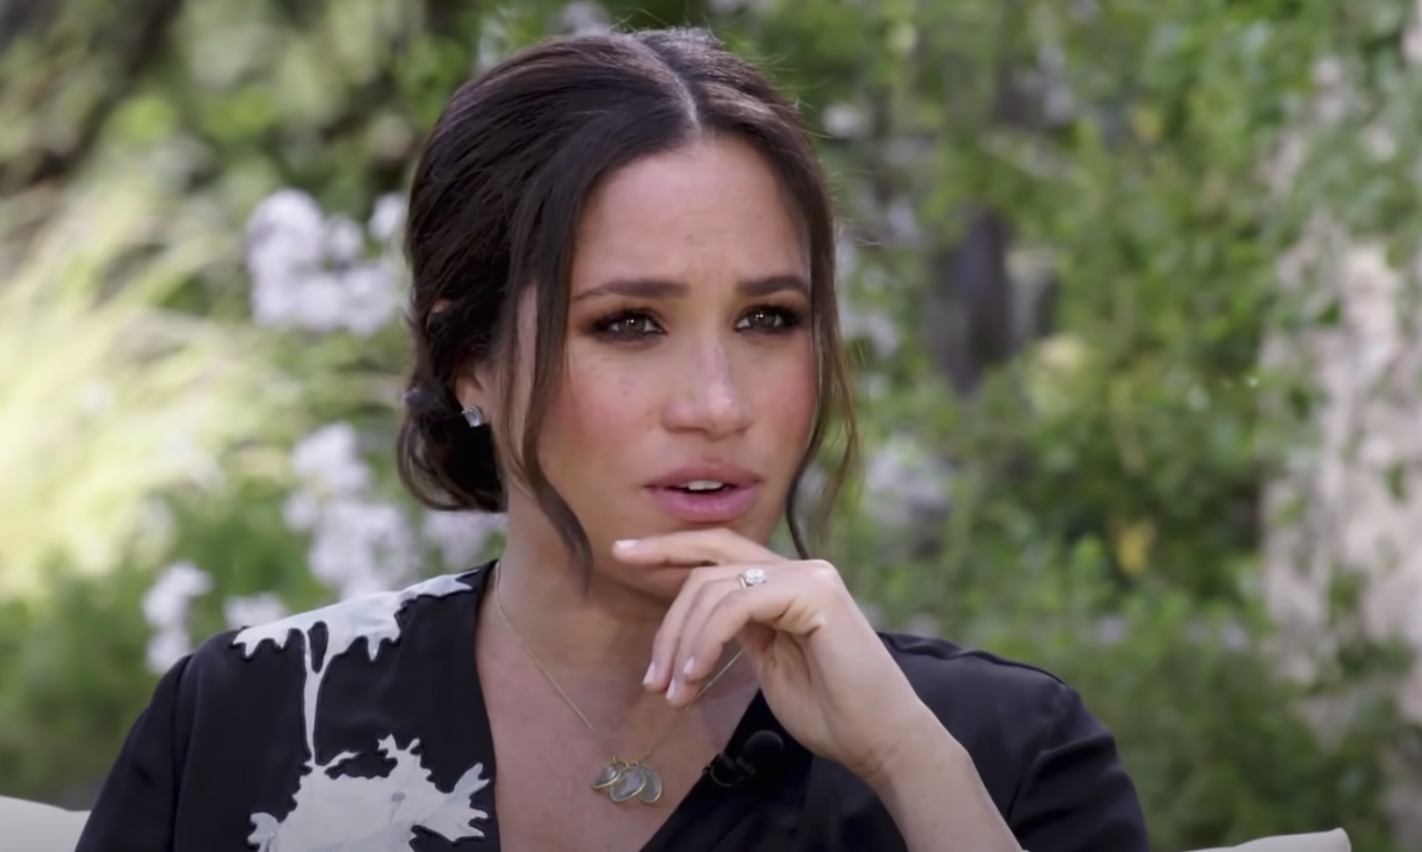 """Buckingham Palace to Investigate Claims of Meghan Markle """"Bullying"""" Royal Staff"""